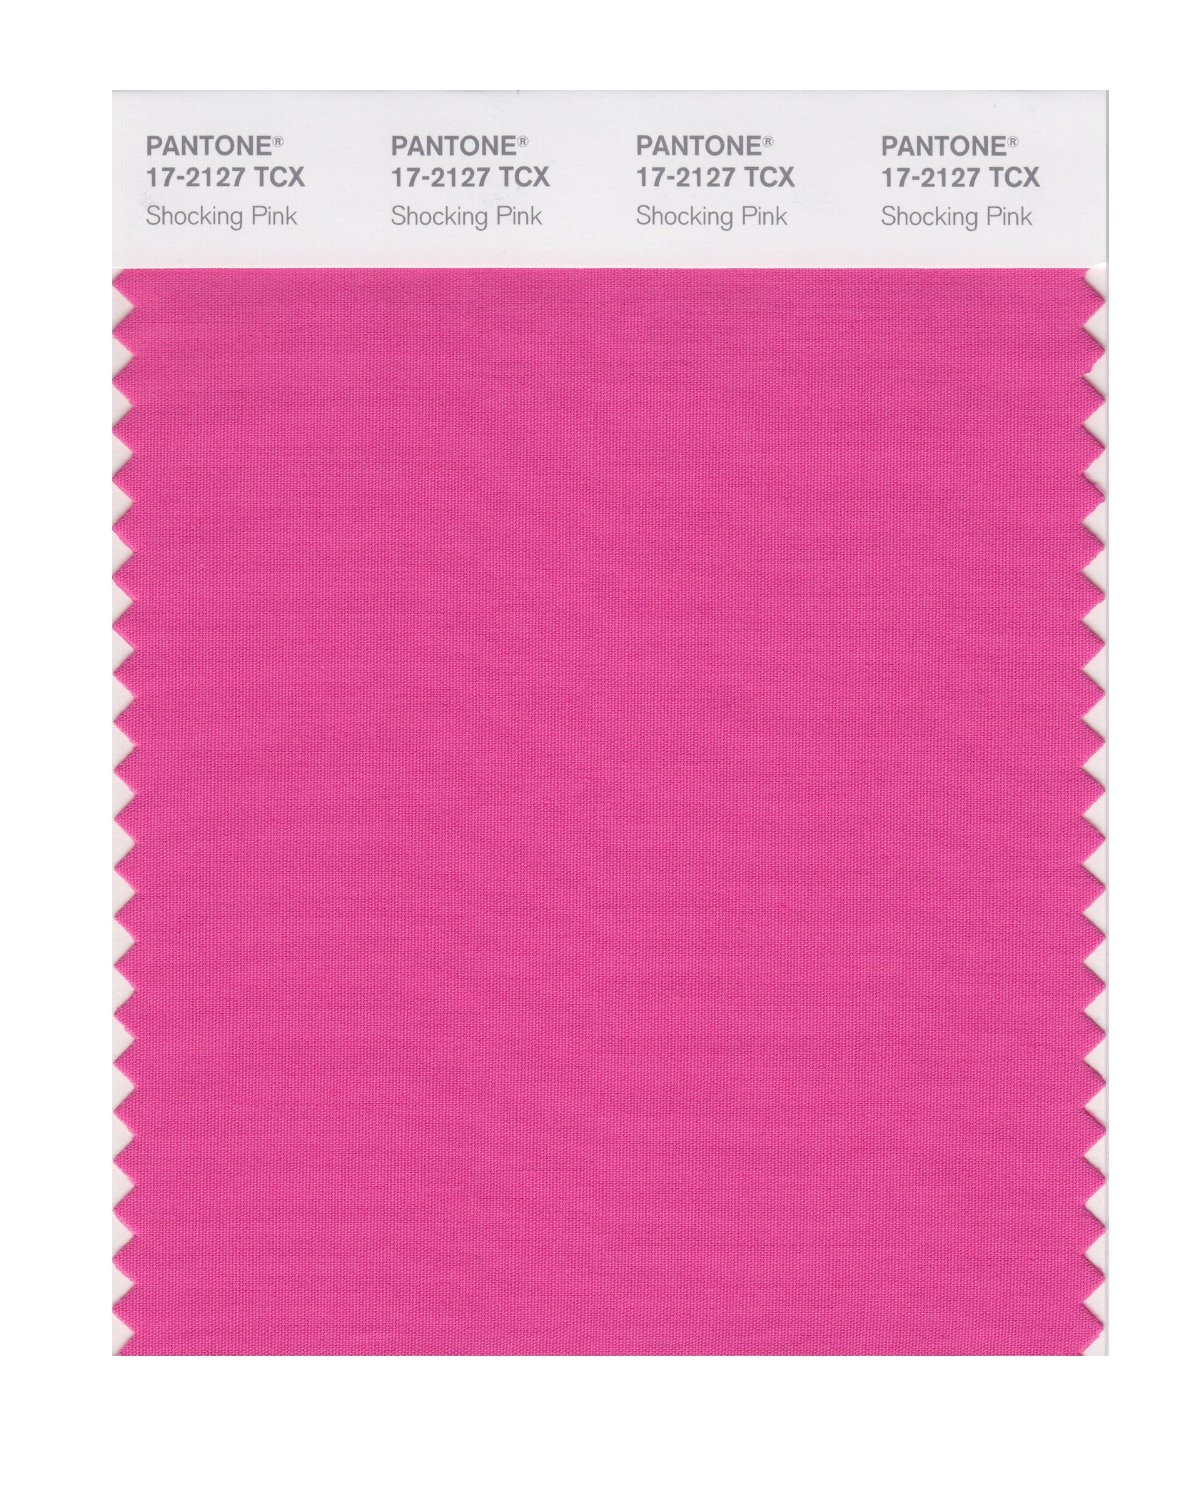 Pantone Smart Swatch 17-2127 Shocking Pink